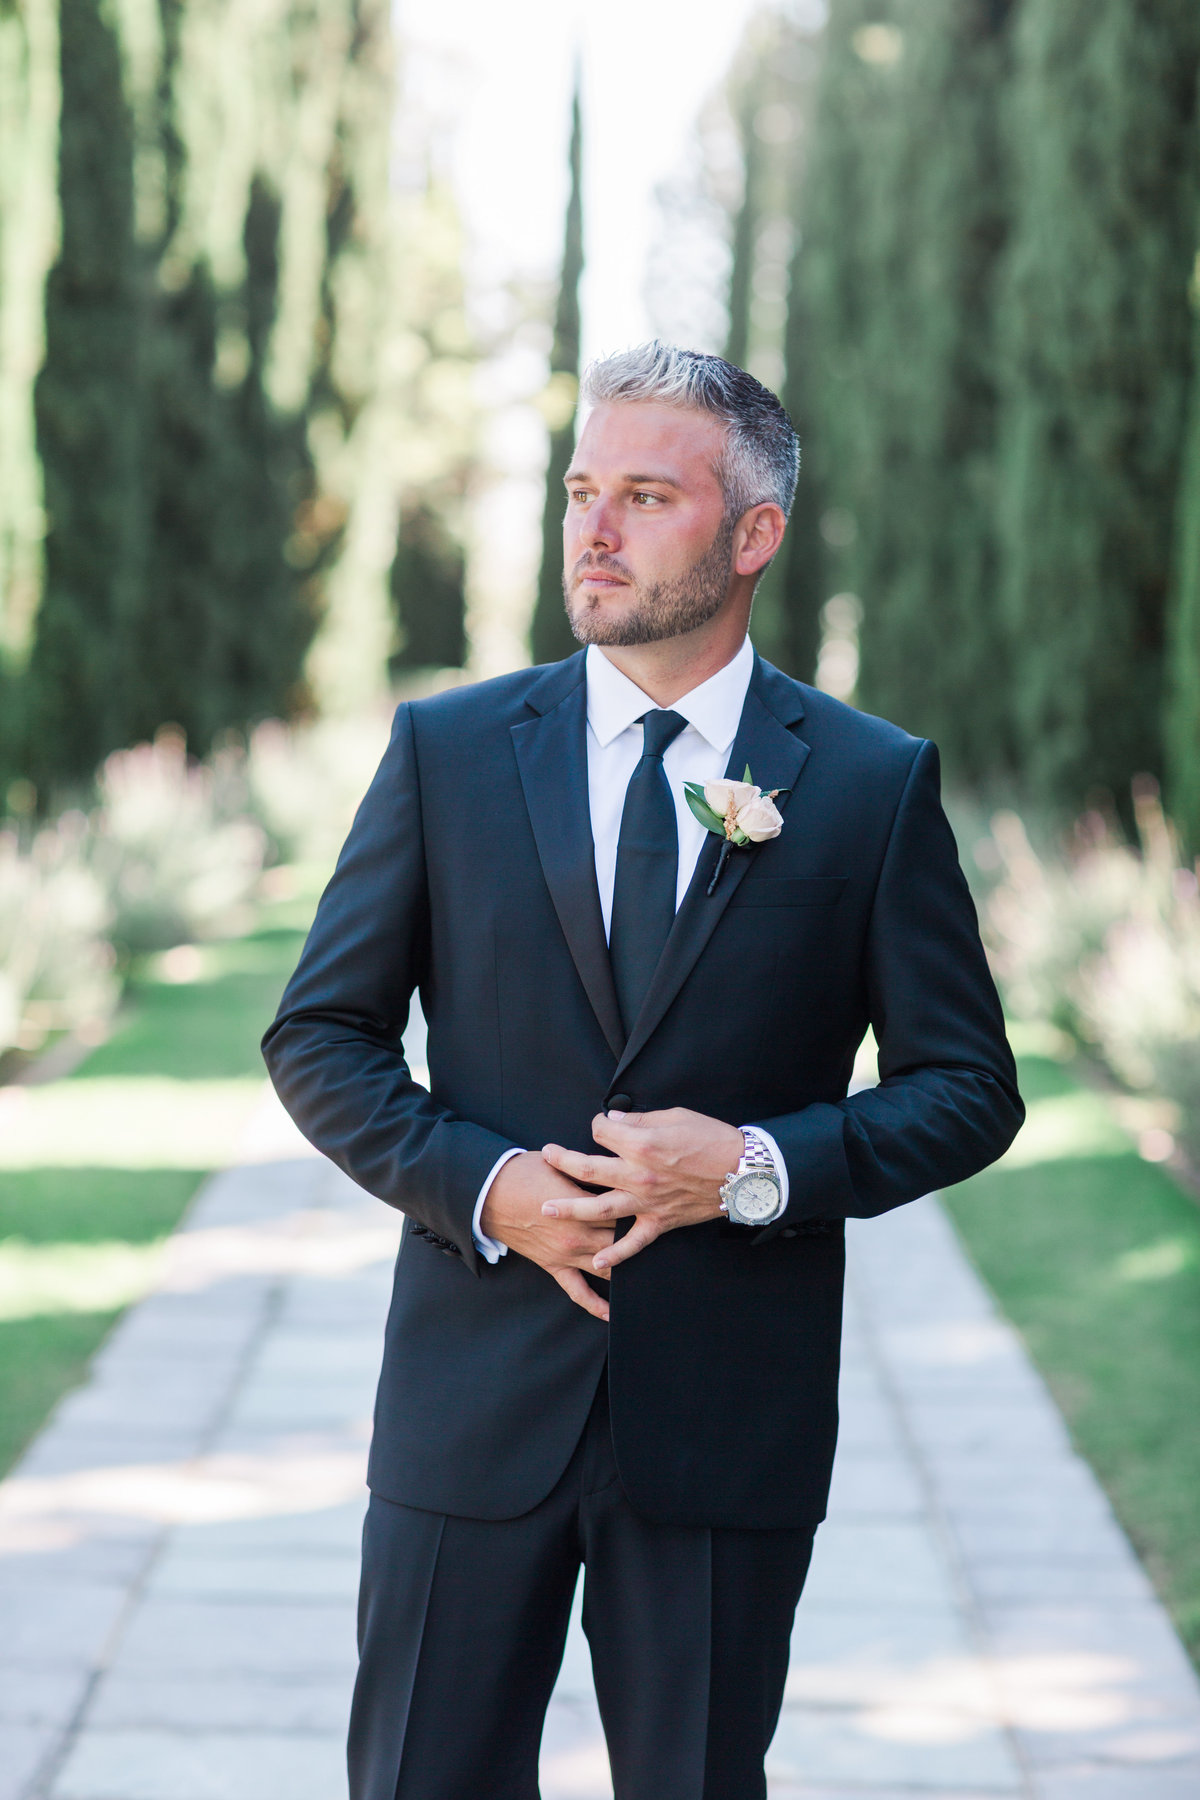 Greystone_Mansion_Intimate_Black_Tie_Wedding_Valorie_Darling_Photography - 73 of 206